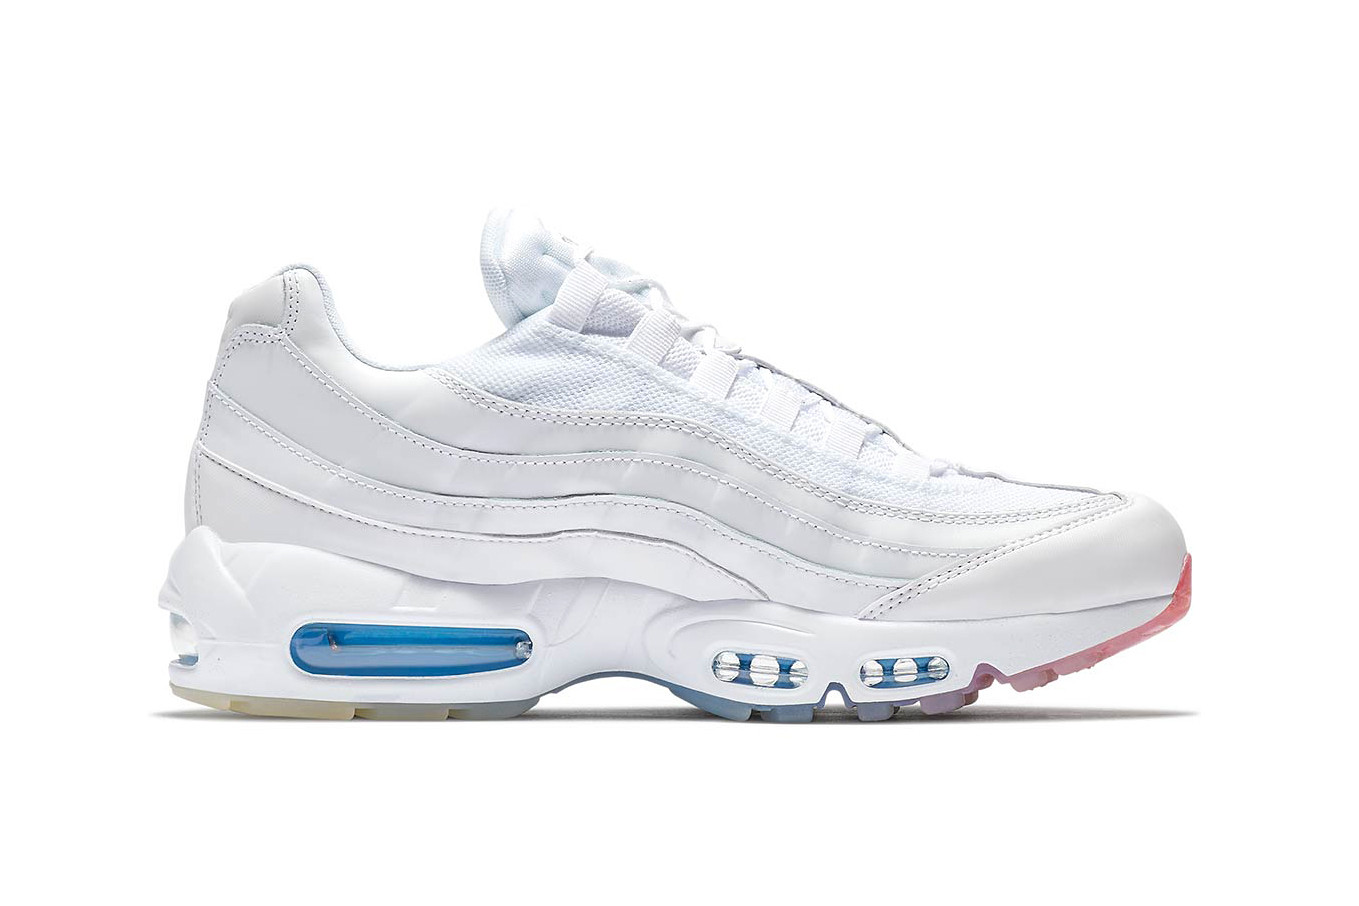 Gradient Sole to the Air Max 95